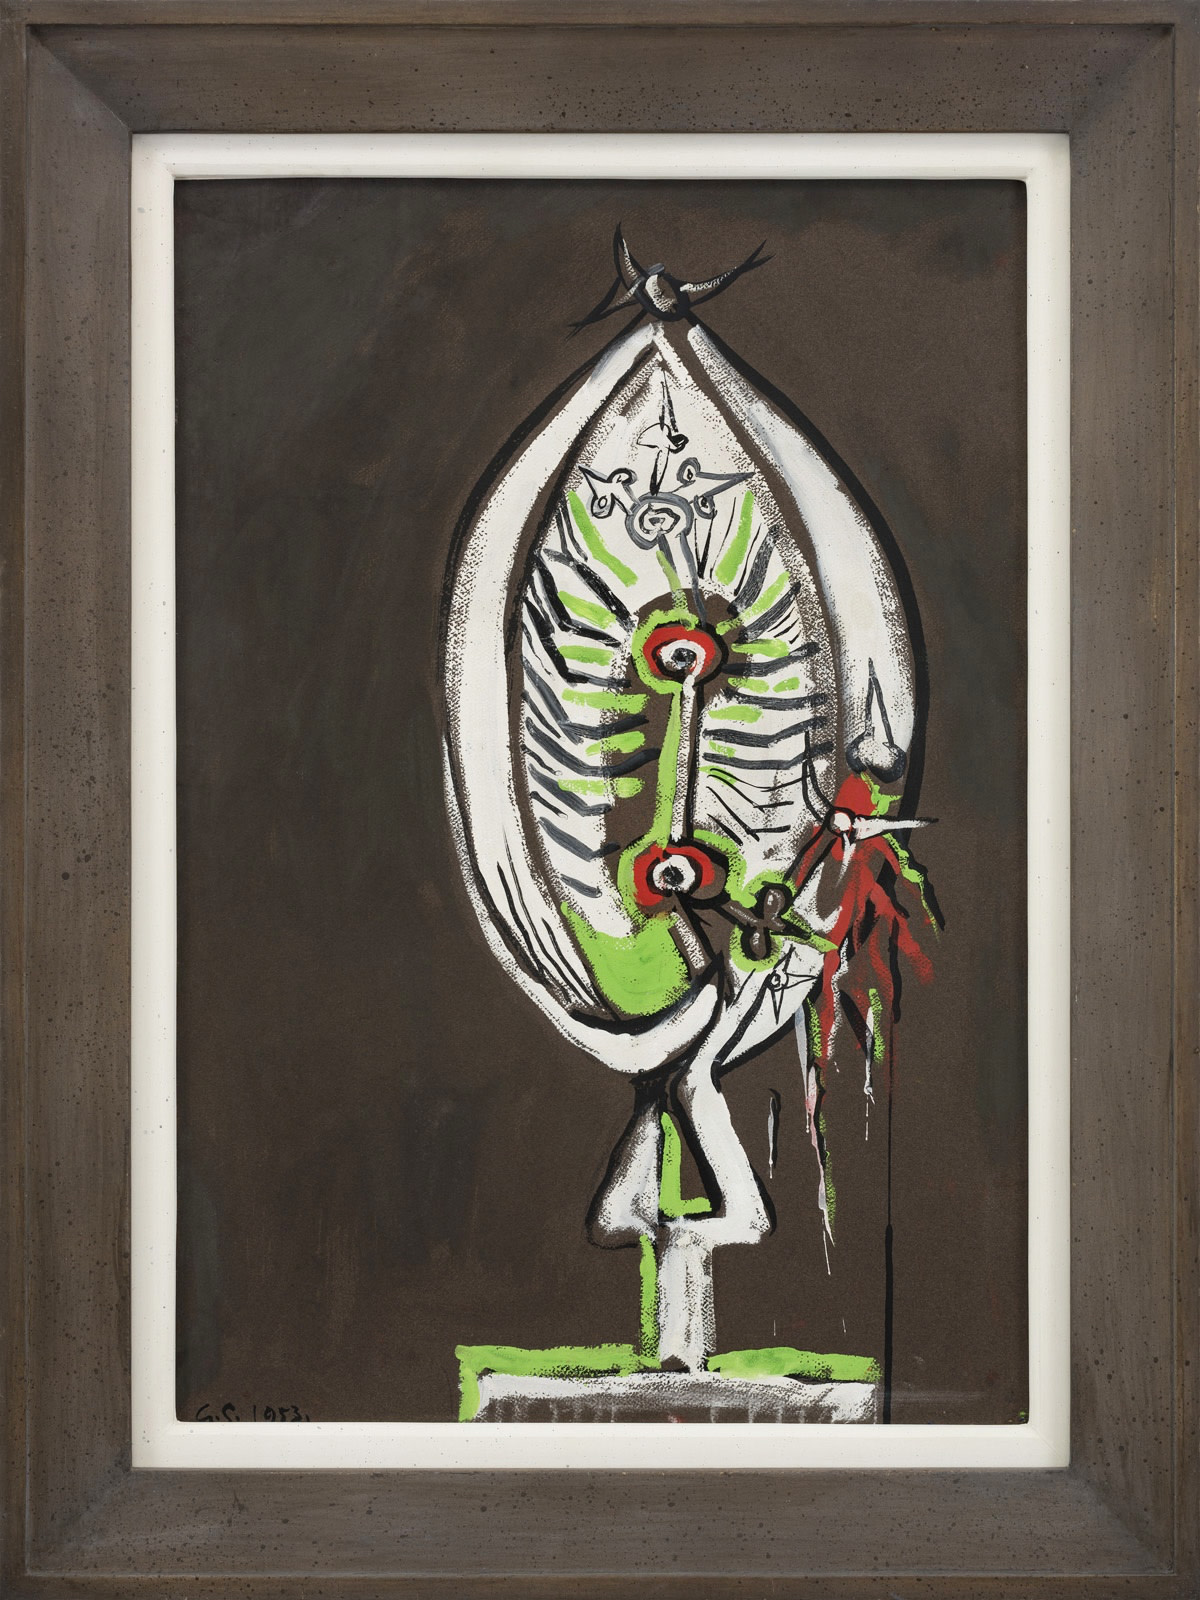 <span class=&#34;link fancybox-details-link&#34;><a href=&#34;/artists/103-graham-sutherland/works/141/&#34;>View Detail Page</a></span><div class=&#34;artist&#34;><strong>Graham Sutherland</strong></div> 1903-1980 <div class=&#34;title&#34;><em>Thorn Head</em></div> <div class=&#34;signed_and_dated&#34;>signed with artist's initials and dated 1953</div> <div class=&#34;medium&#34;>gouache</div> <div class=&#34;dimensions&#34;>66 x 45.5 cms (26 x 18 ins)<br /> framed: 81 x 61 cms (32 x 24 ins)</div>